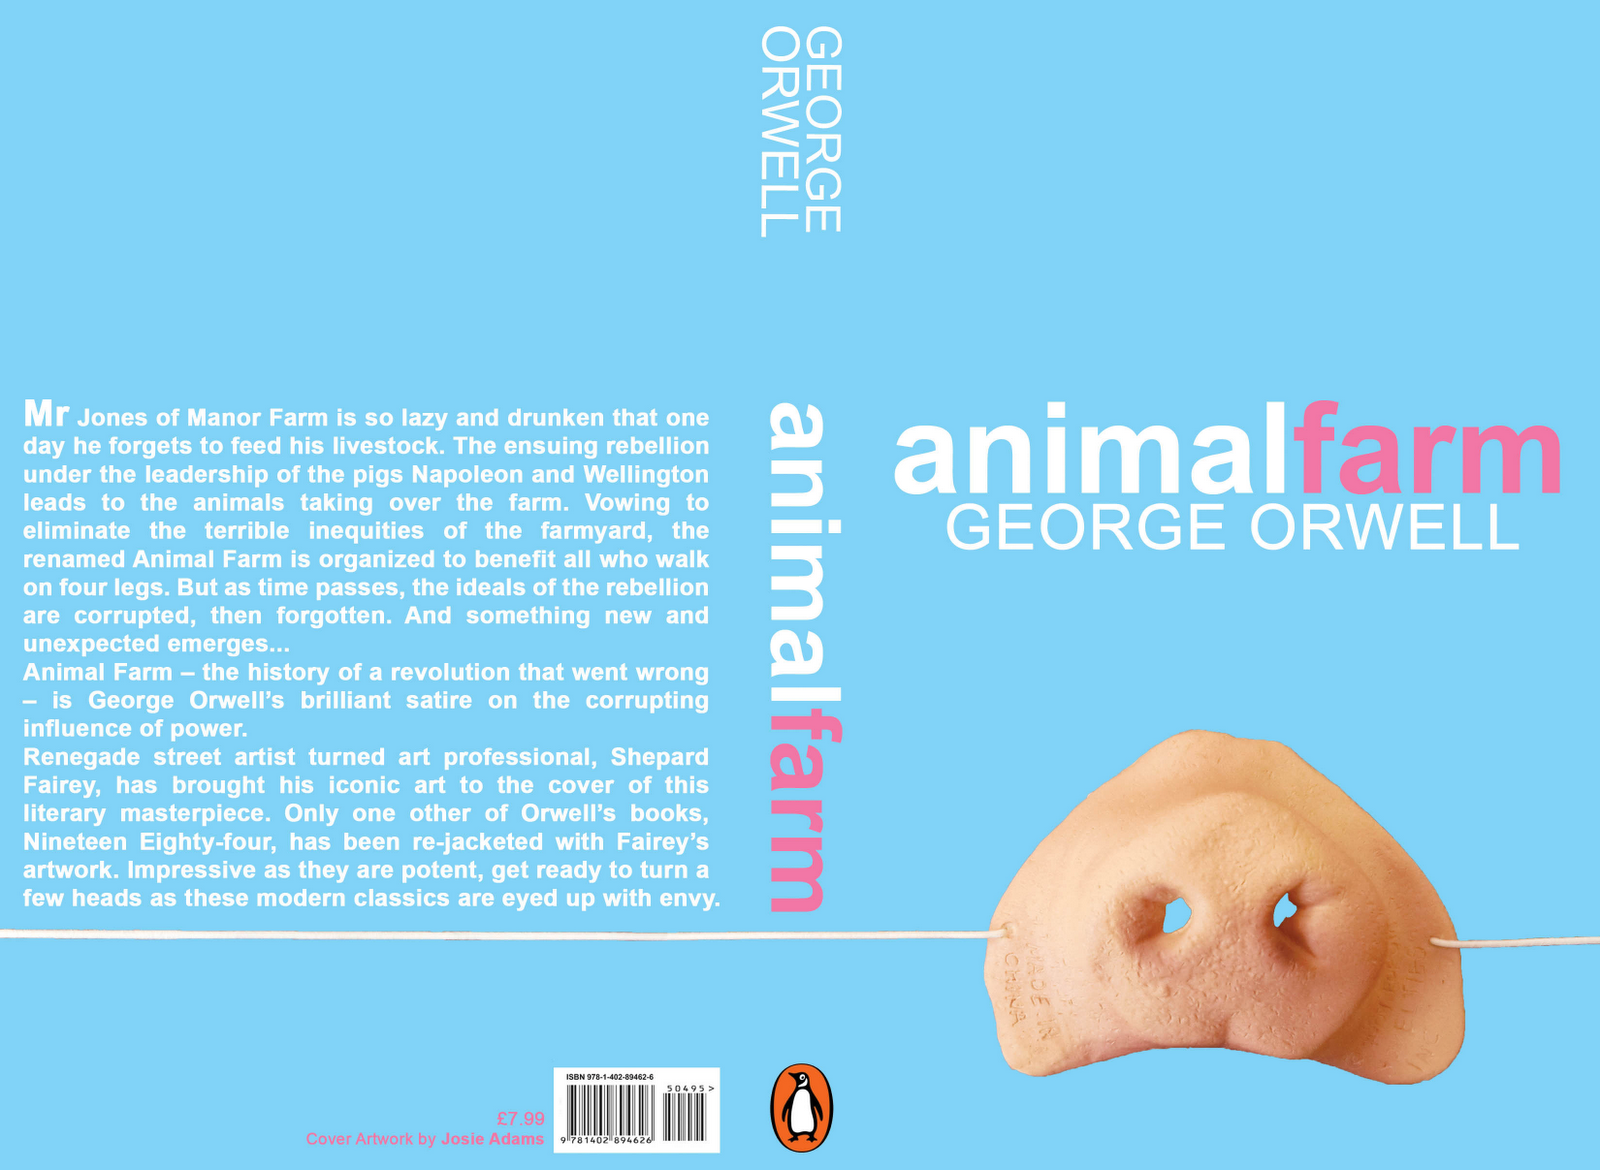 Exercise Book Cover Designs In Png Invitation Templates Animal Farm Book Animal Farm George Orwell Book Cover Design